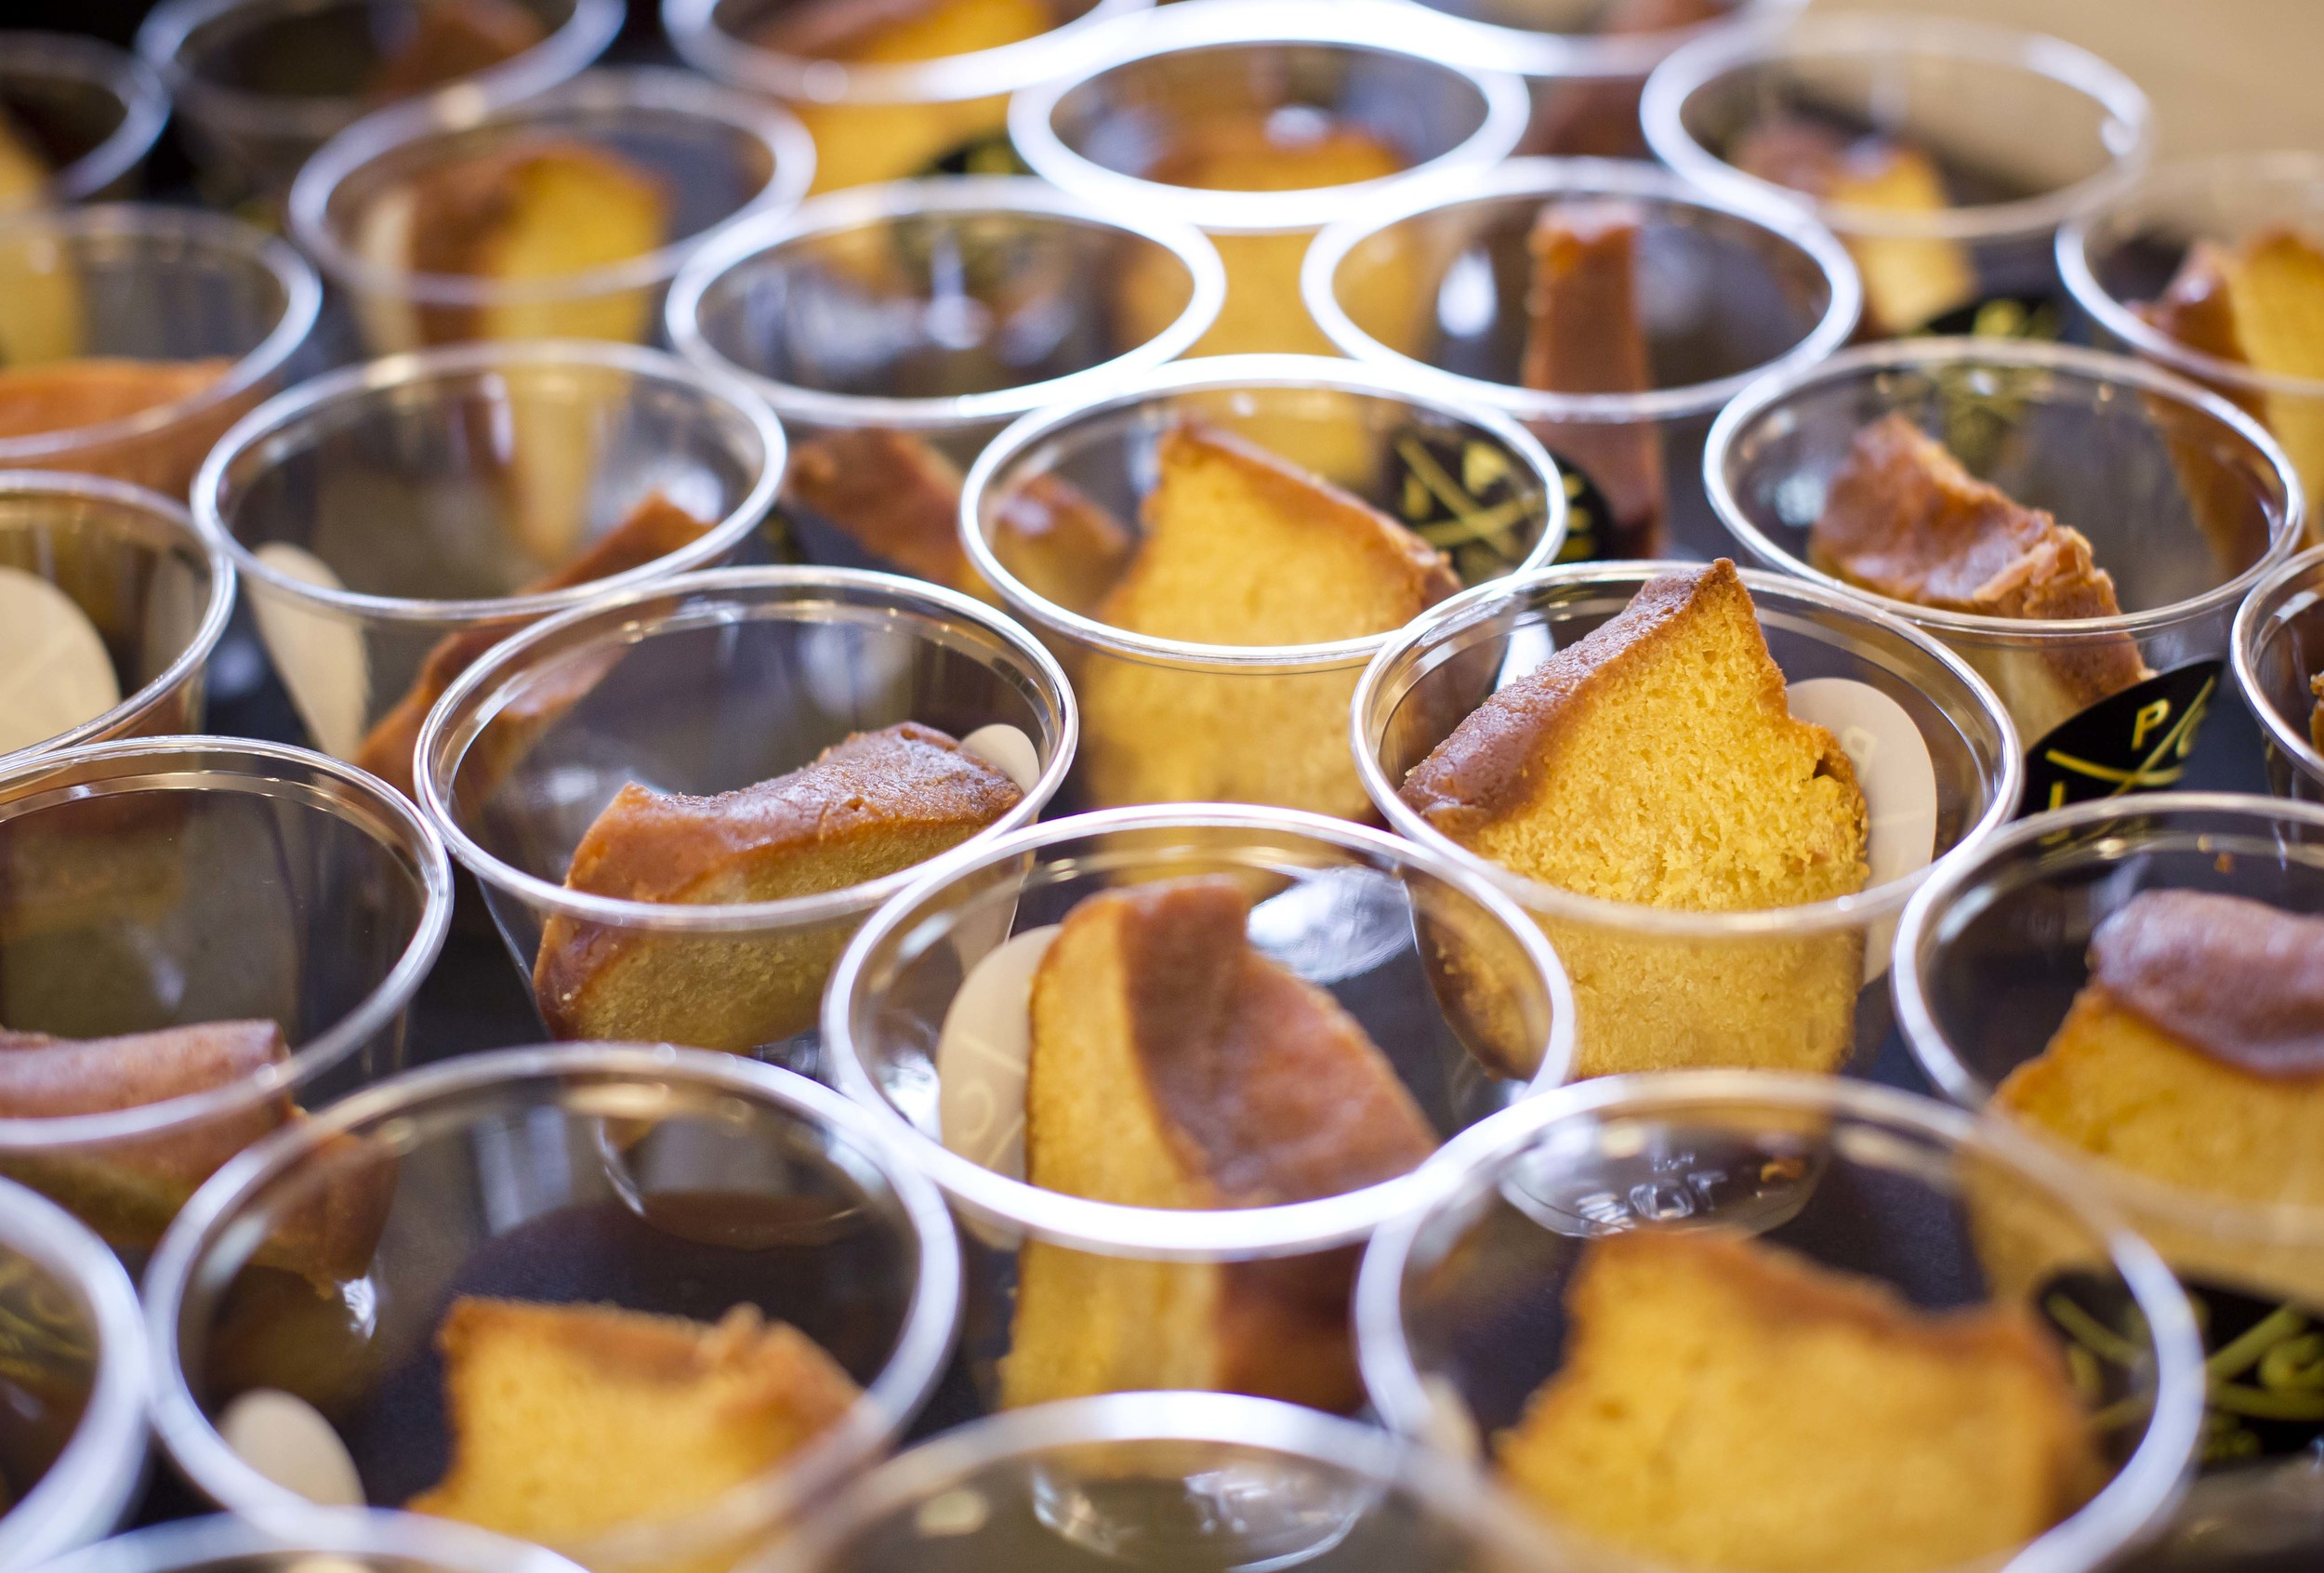 Commonwealth food event 2014-2409.jpg